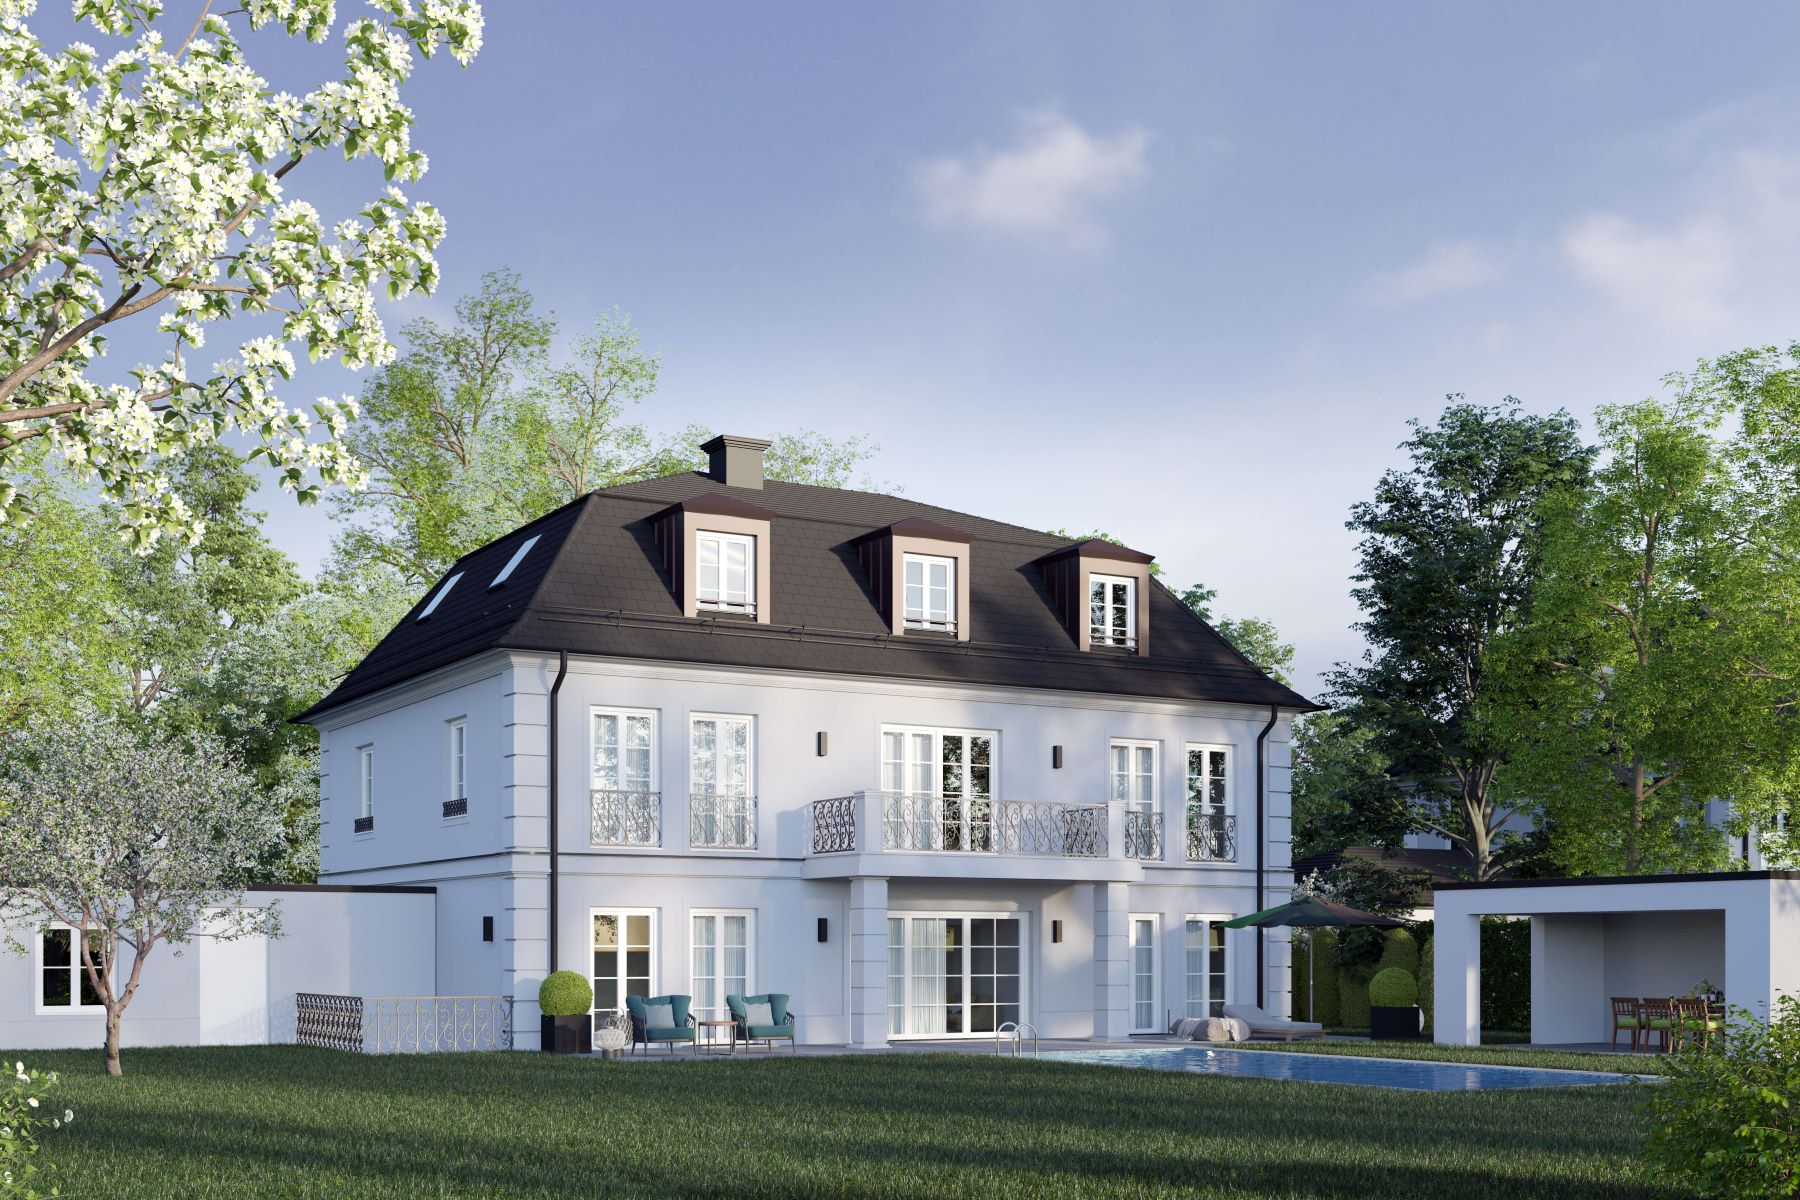 Single Family Homes for Sale at CLASSIC LIVING IN THE PARK Grunwald, Bavaria Germany